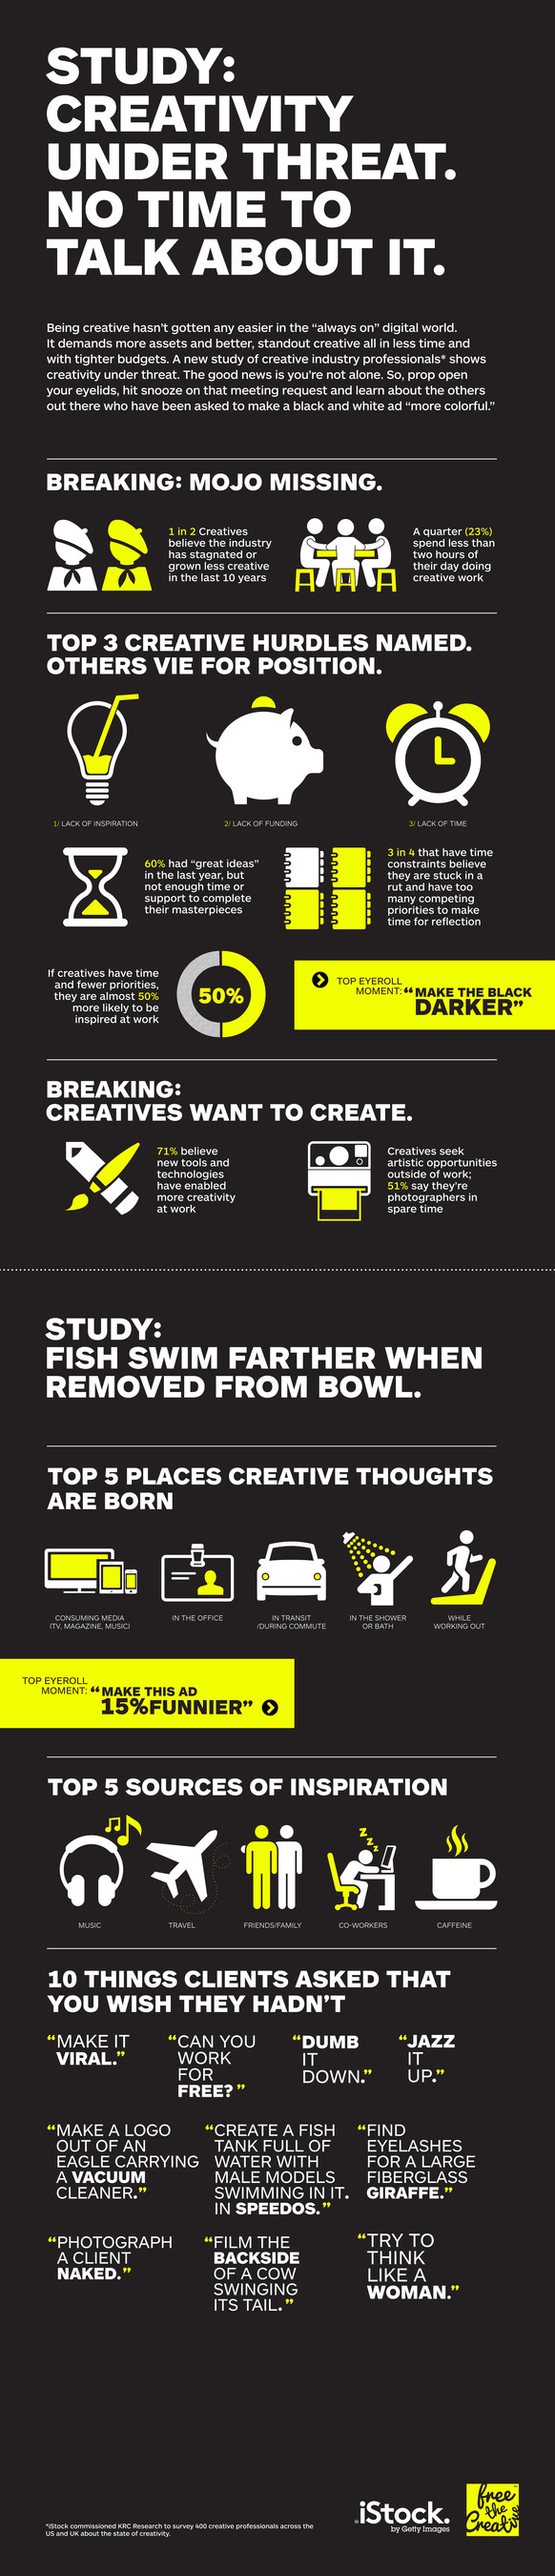 STUDY:CREATIVITY UNDER THREAT. NO TIME TO TALK ABOUT IT.  (PRNewsFoto/iStock by Getty Images)